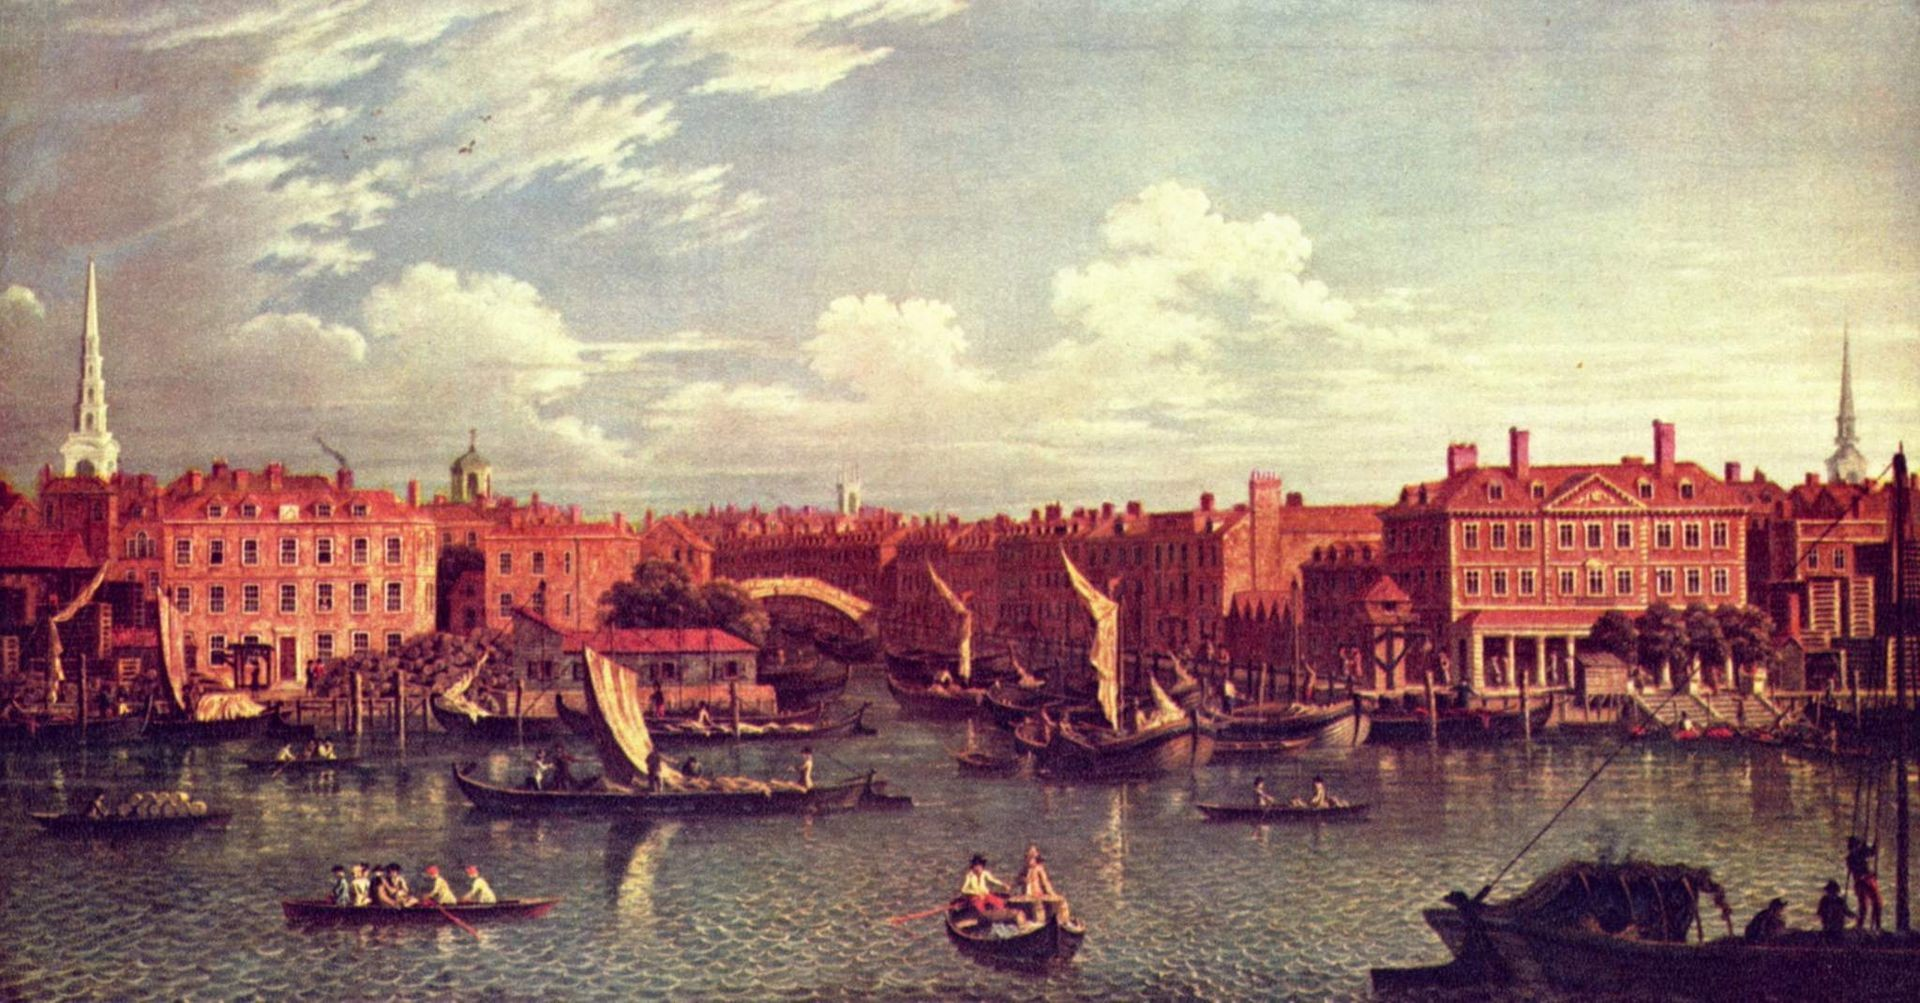 Entrance to the Fleet River, c. 1750